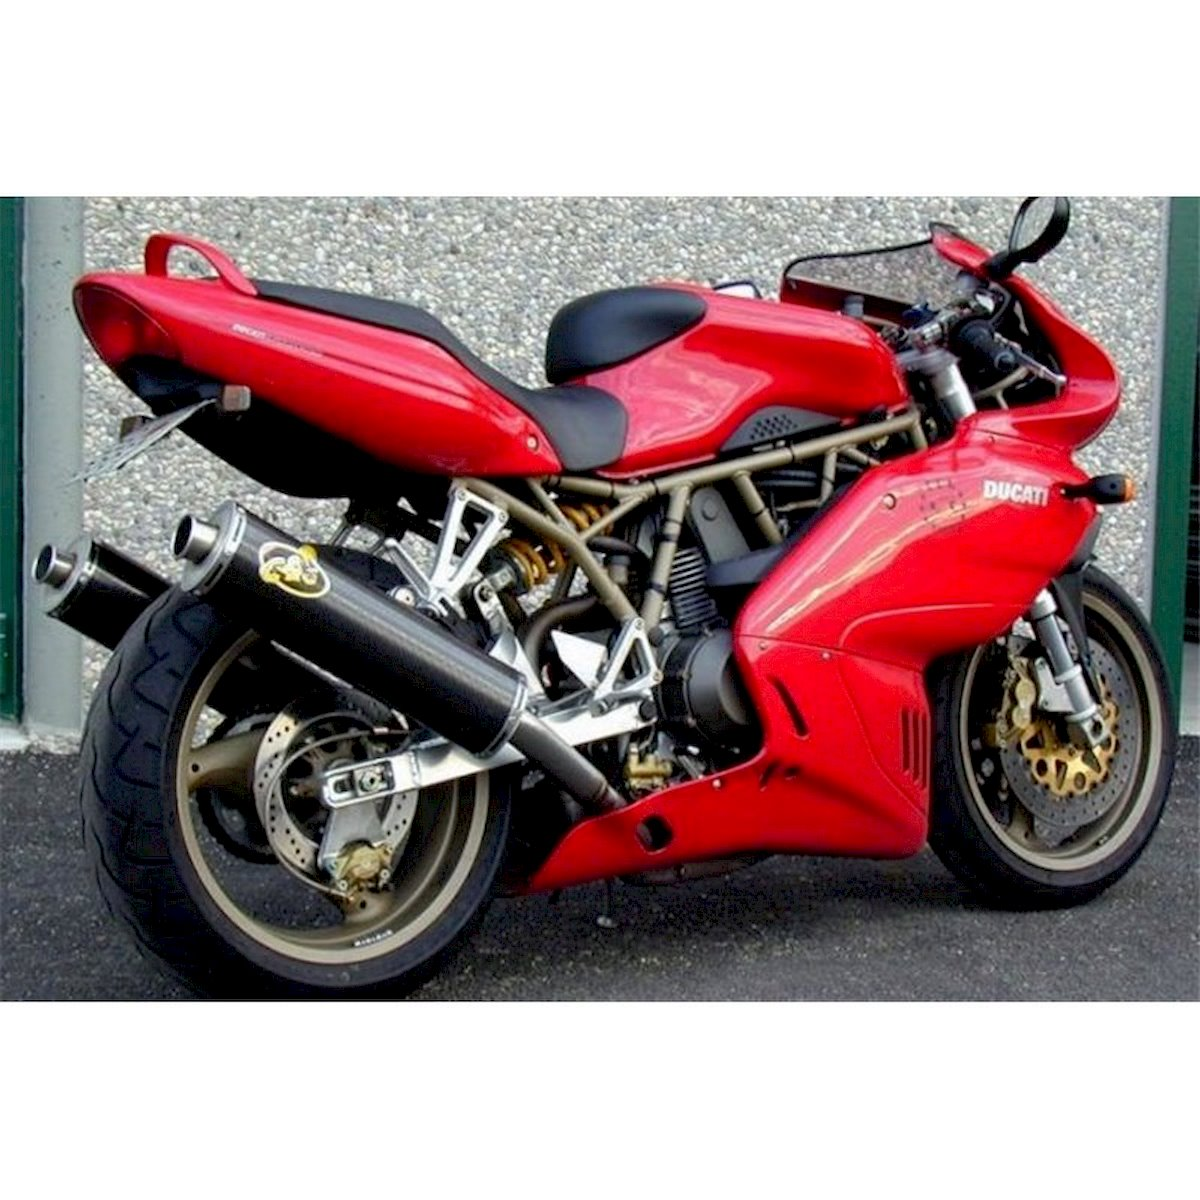 Image of DUCATI SUPERSPORT 800